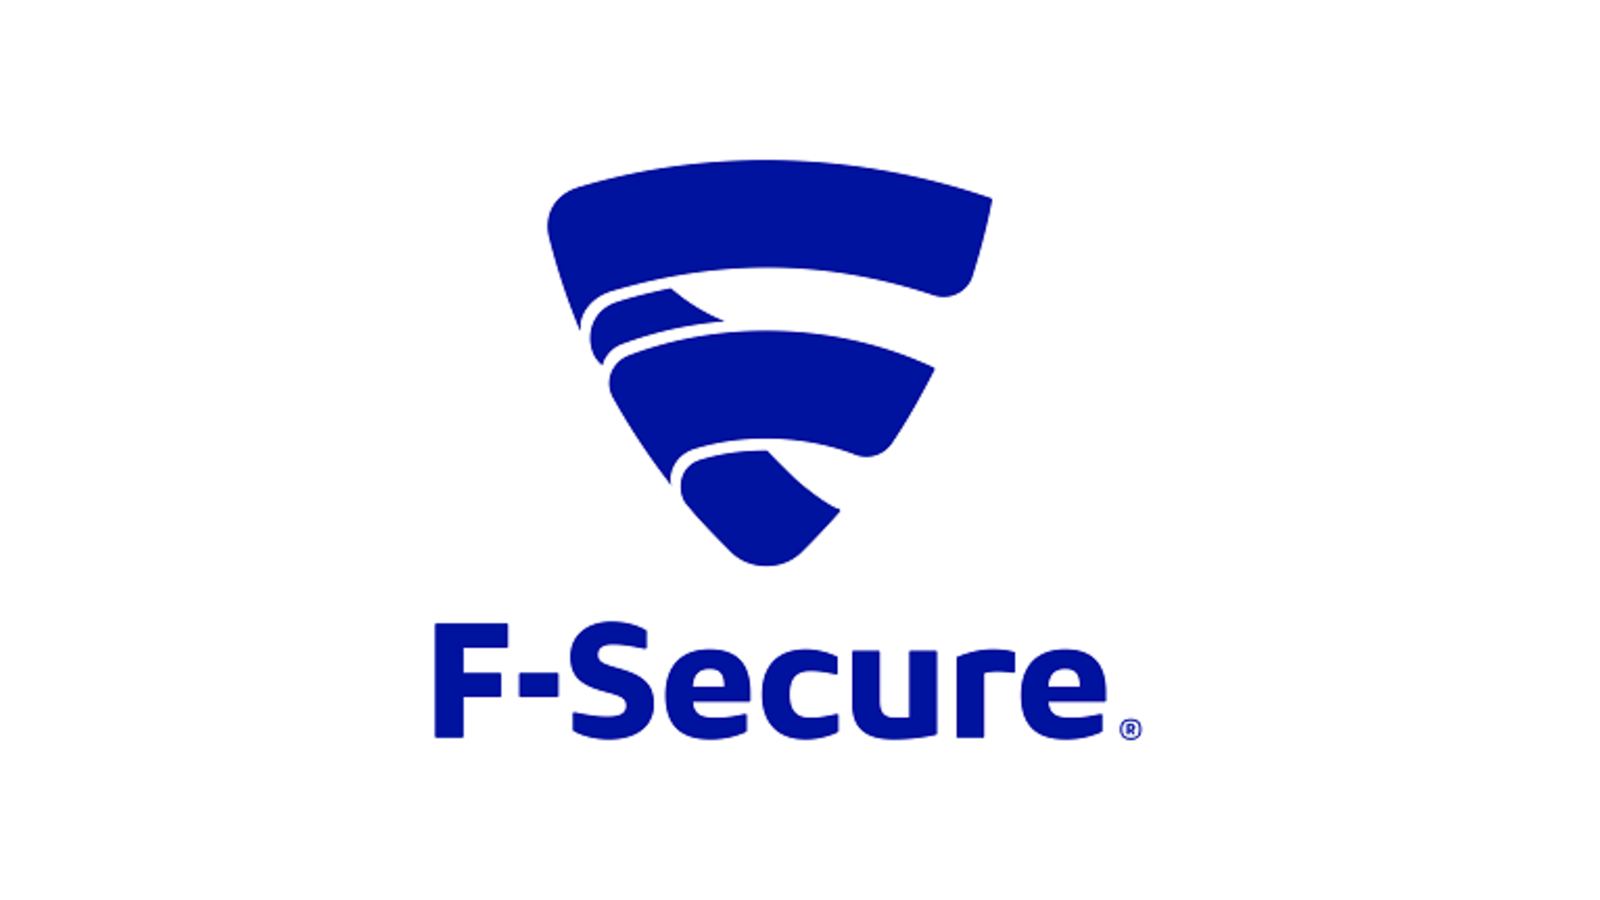 F-Secure Becomes Cybersecurity Awareness Month 2021 Champion